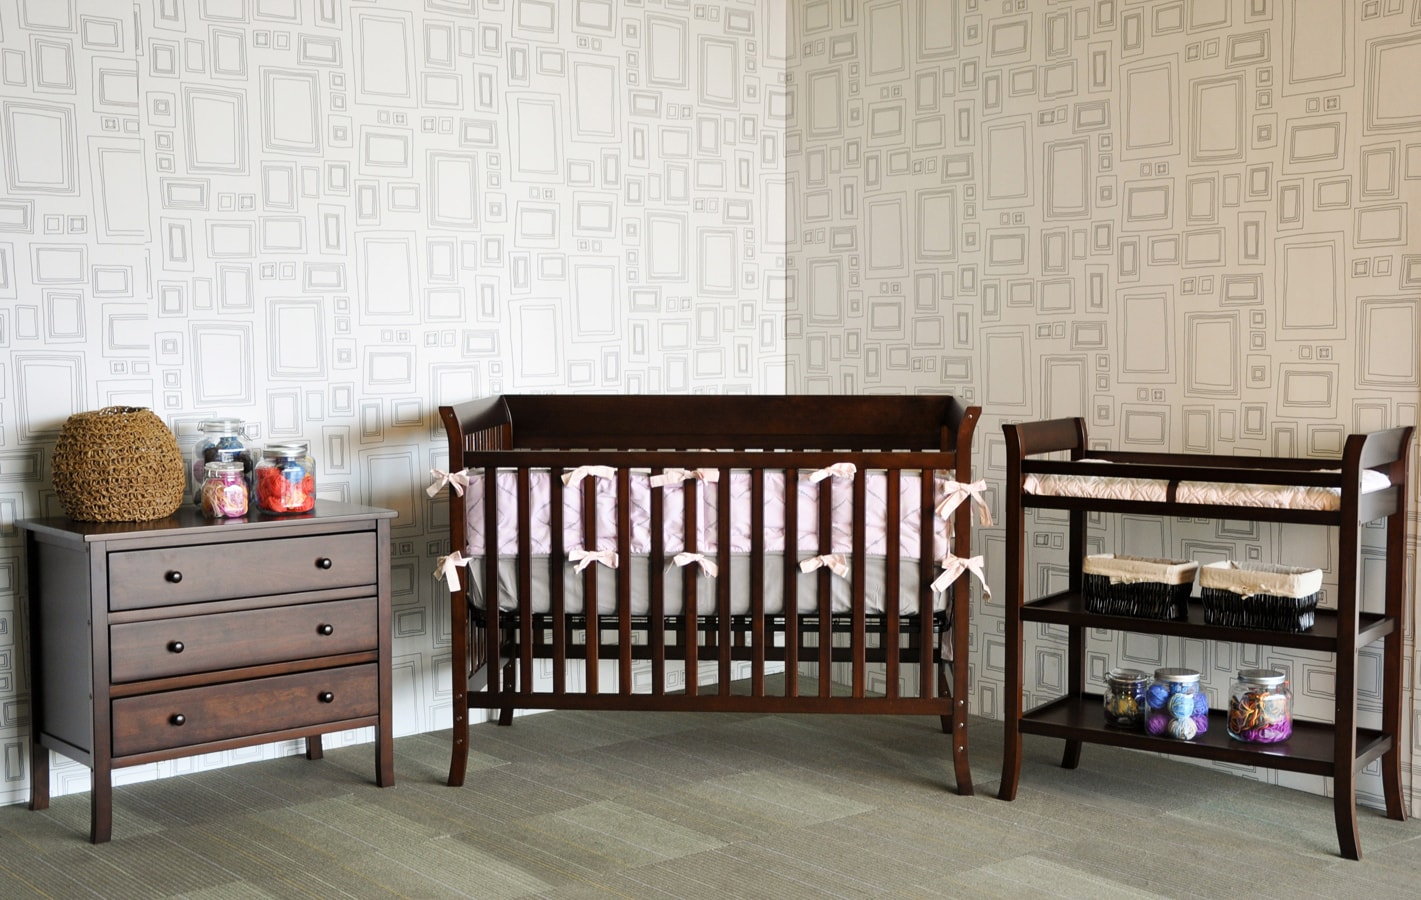 Ava Complete 5 piece Nursery Set by BabyMod in Espresso - Thumbnail 0